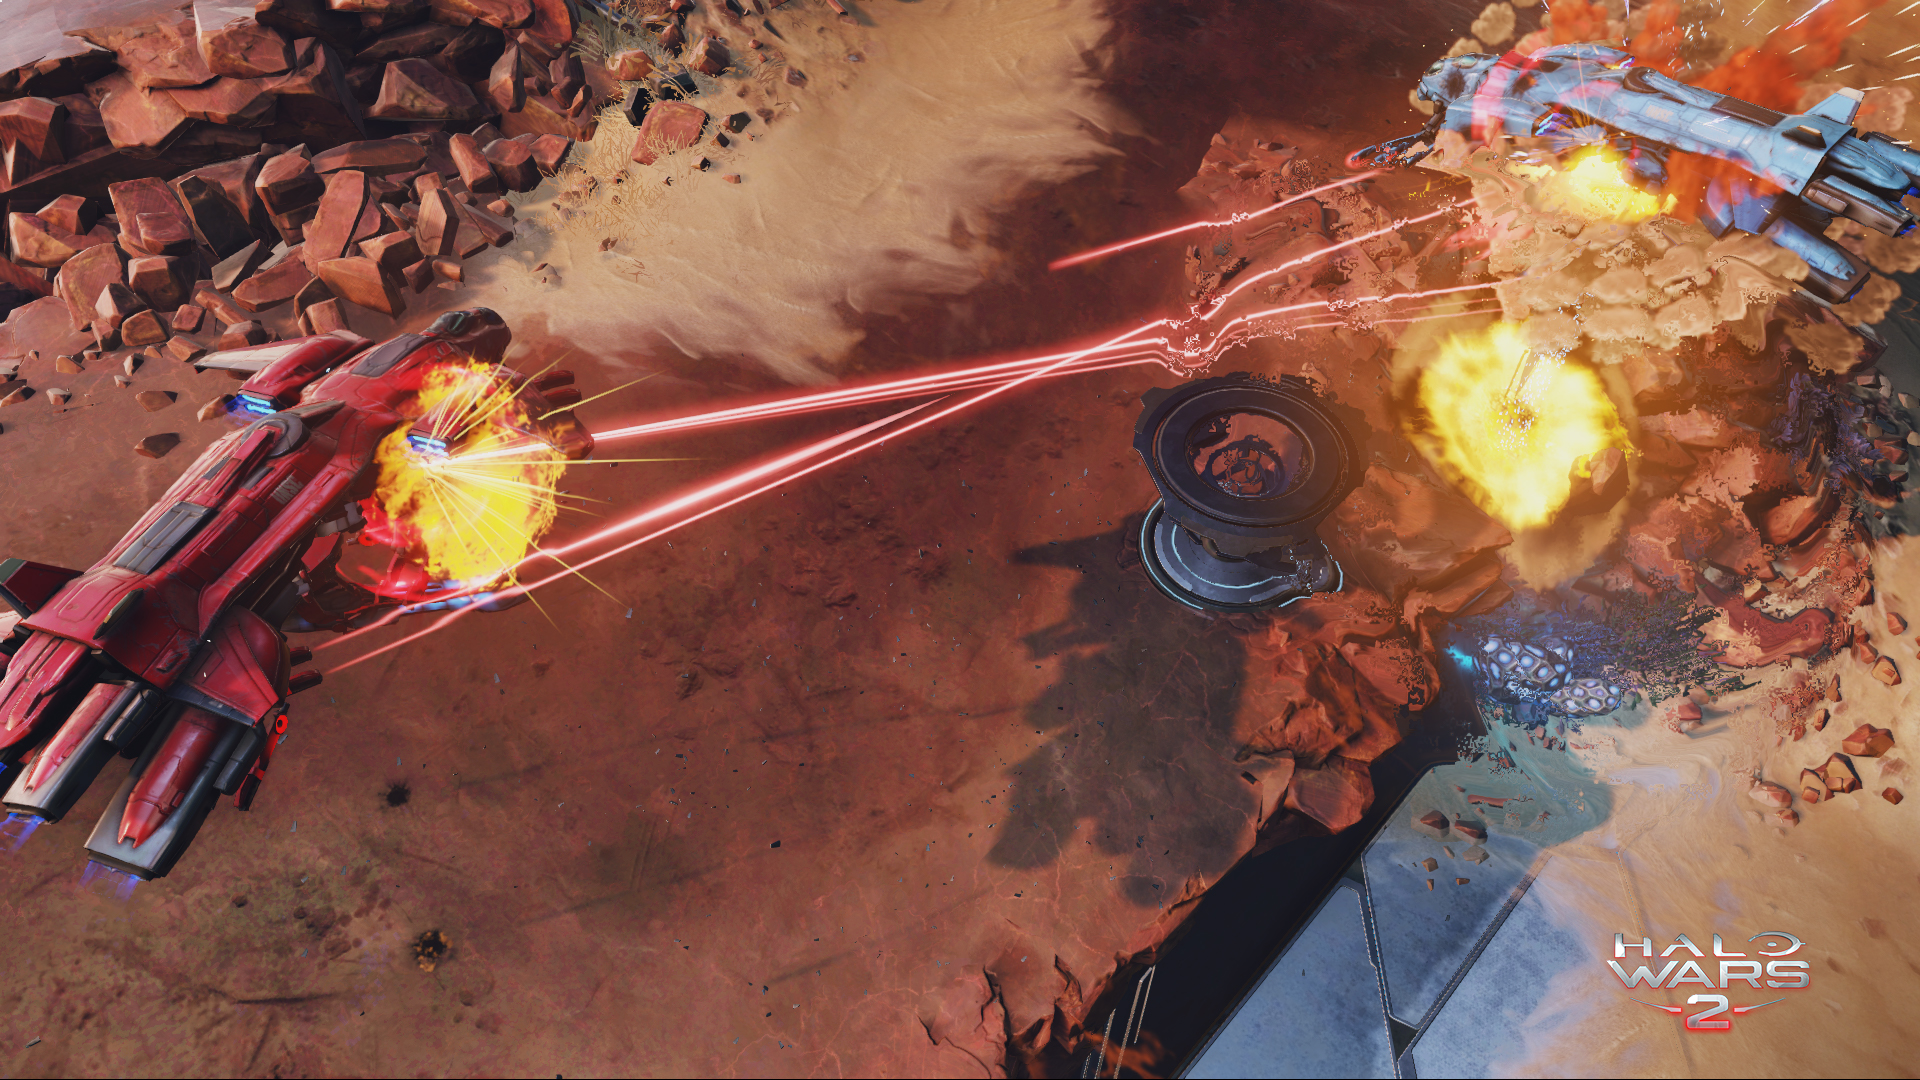 Halo Wars 2 Has The Unique Opportunity To Transcend Many Of The Rts Genre U0026 39 S Weaknesses